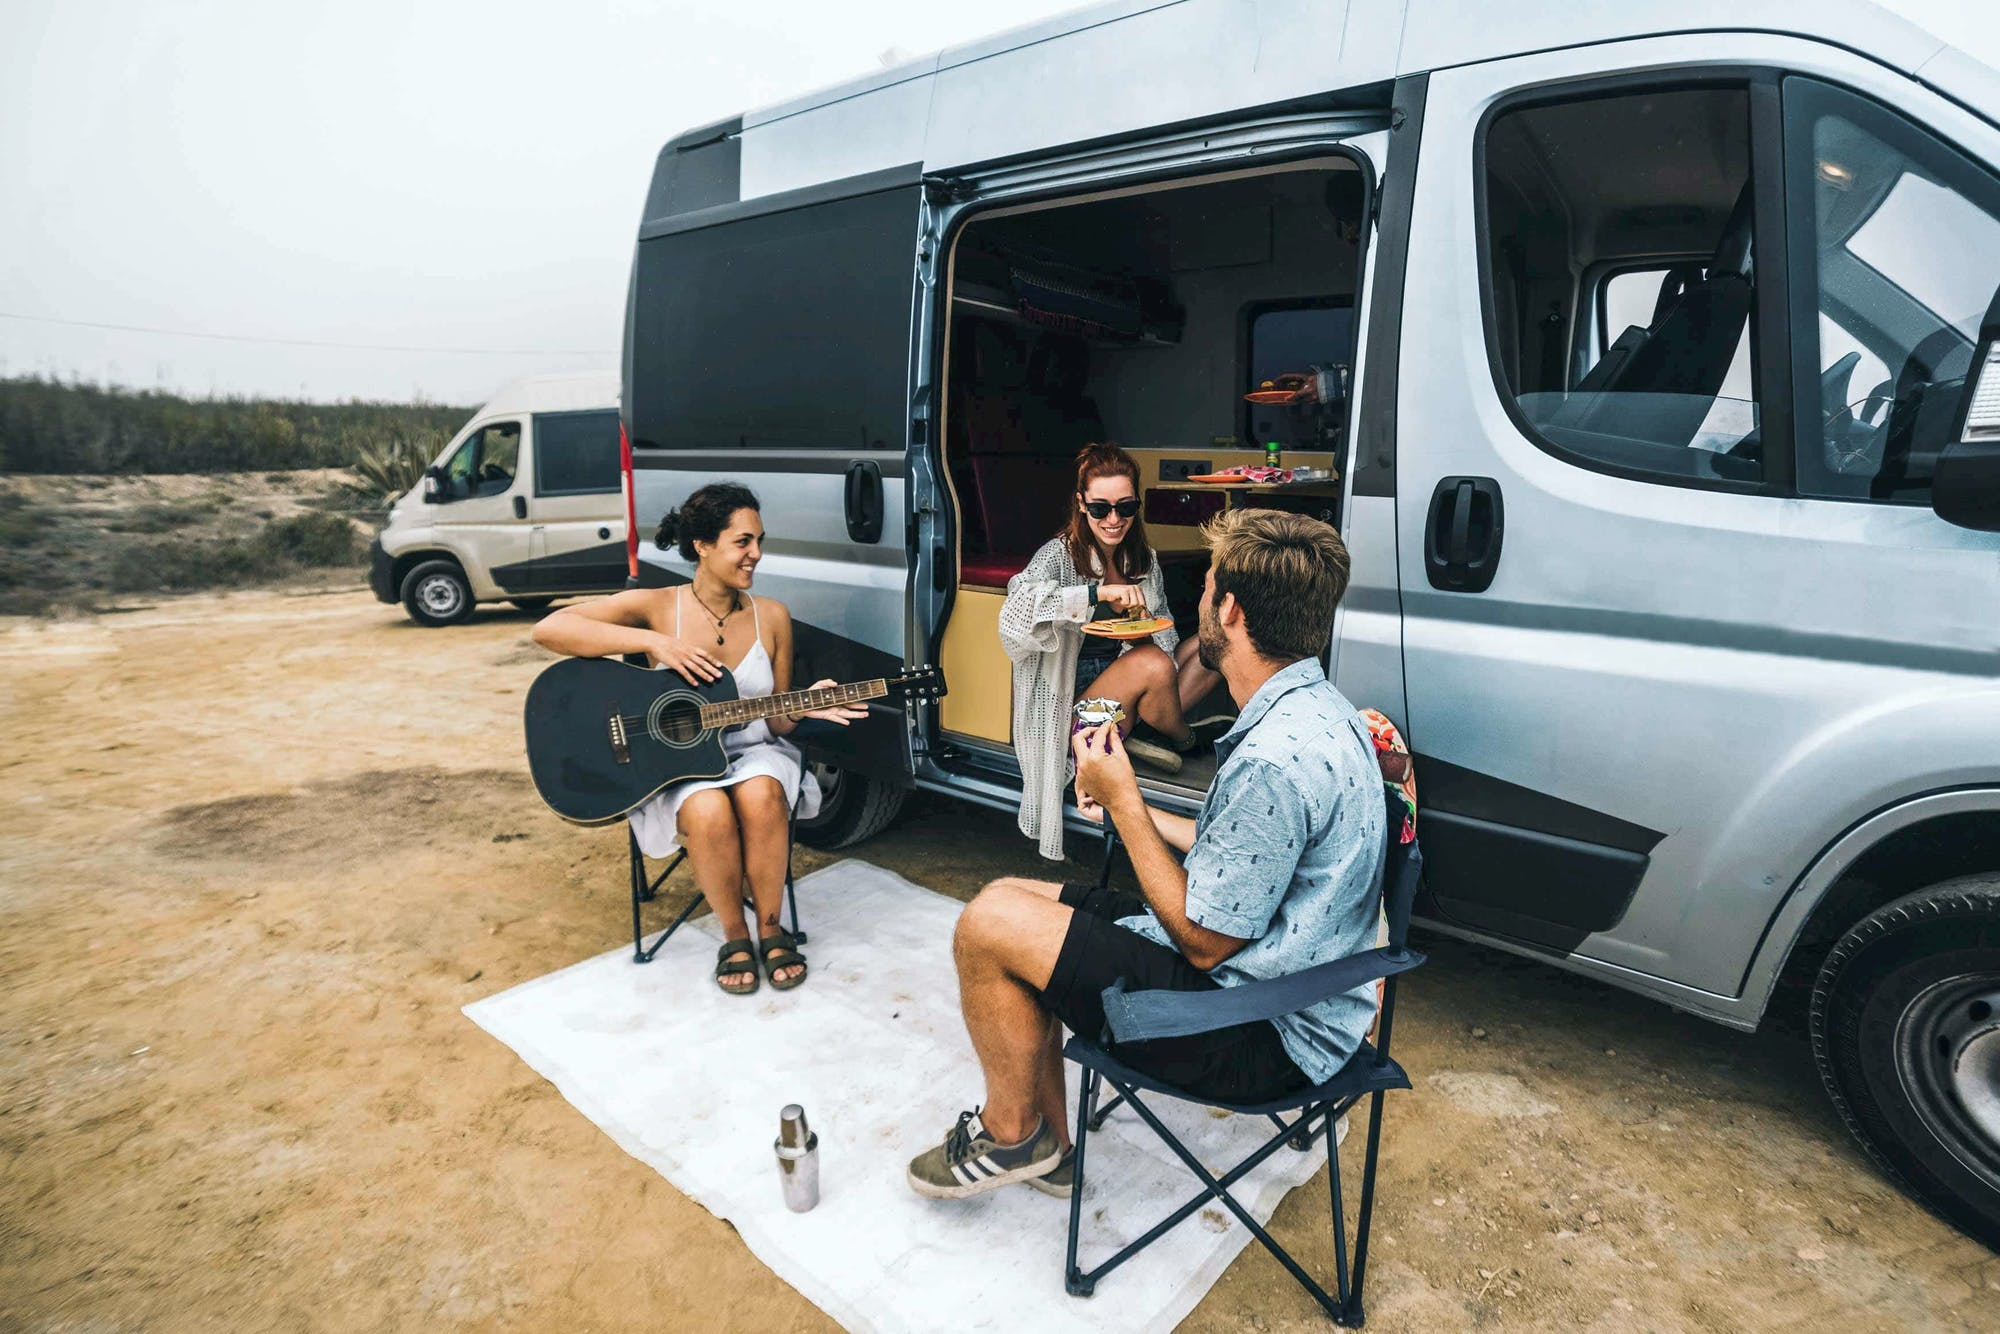 Friends outside the Sporty campervan playing guitar and having fun